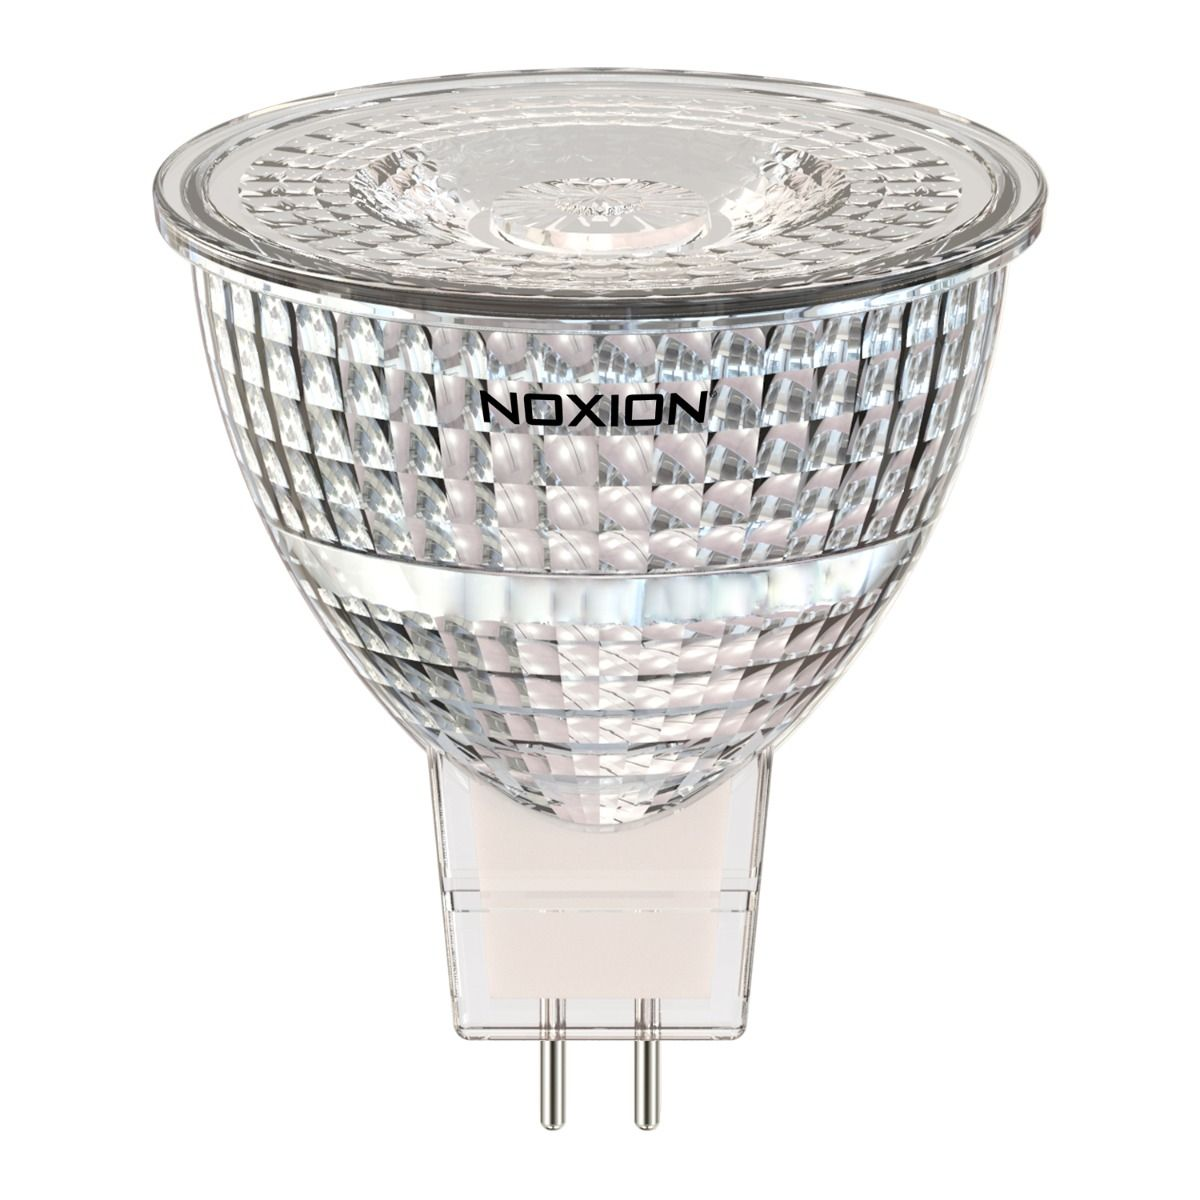 Noxion LED Spot GU5.3 7.8W 830 36D 730lm | Replacer for 50W